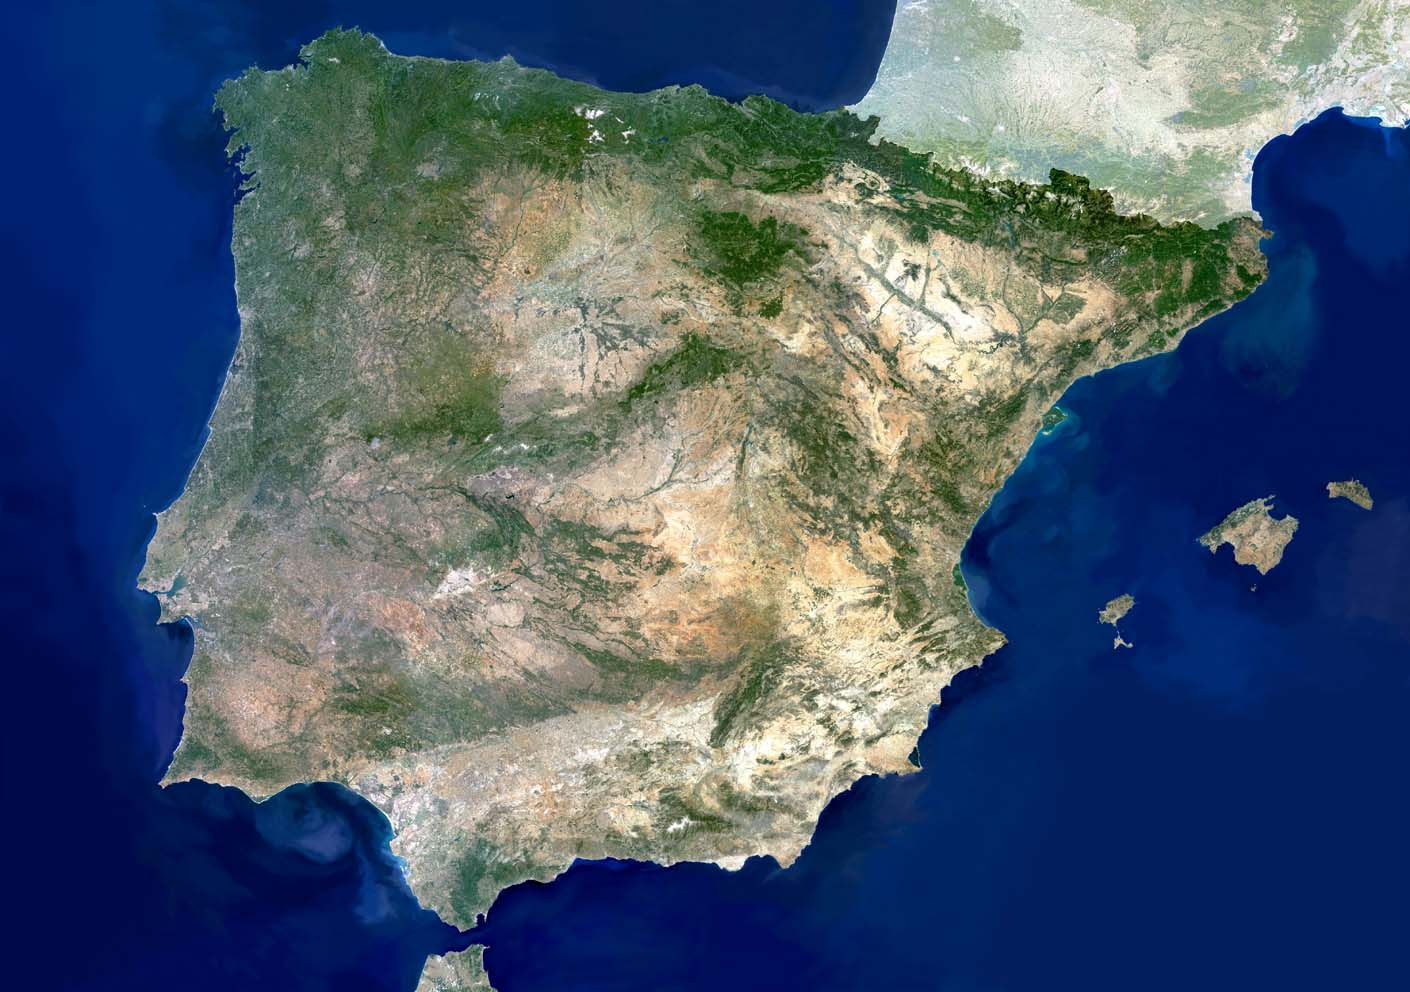 Photo satellite de l'Espagne.